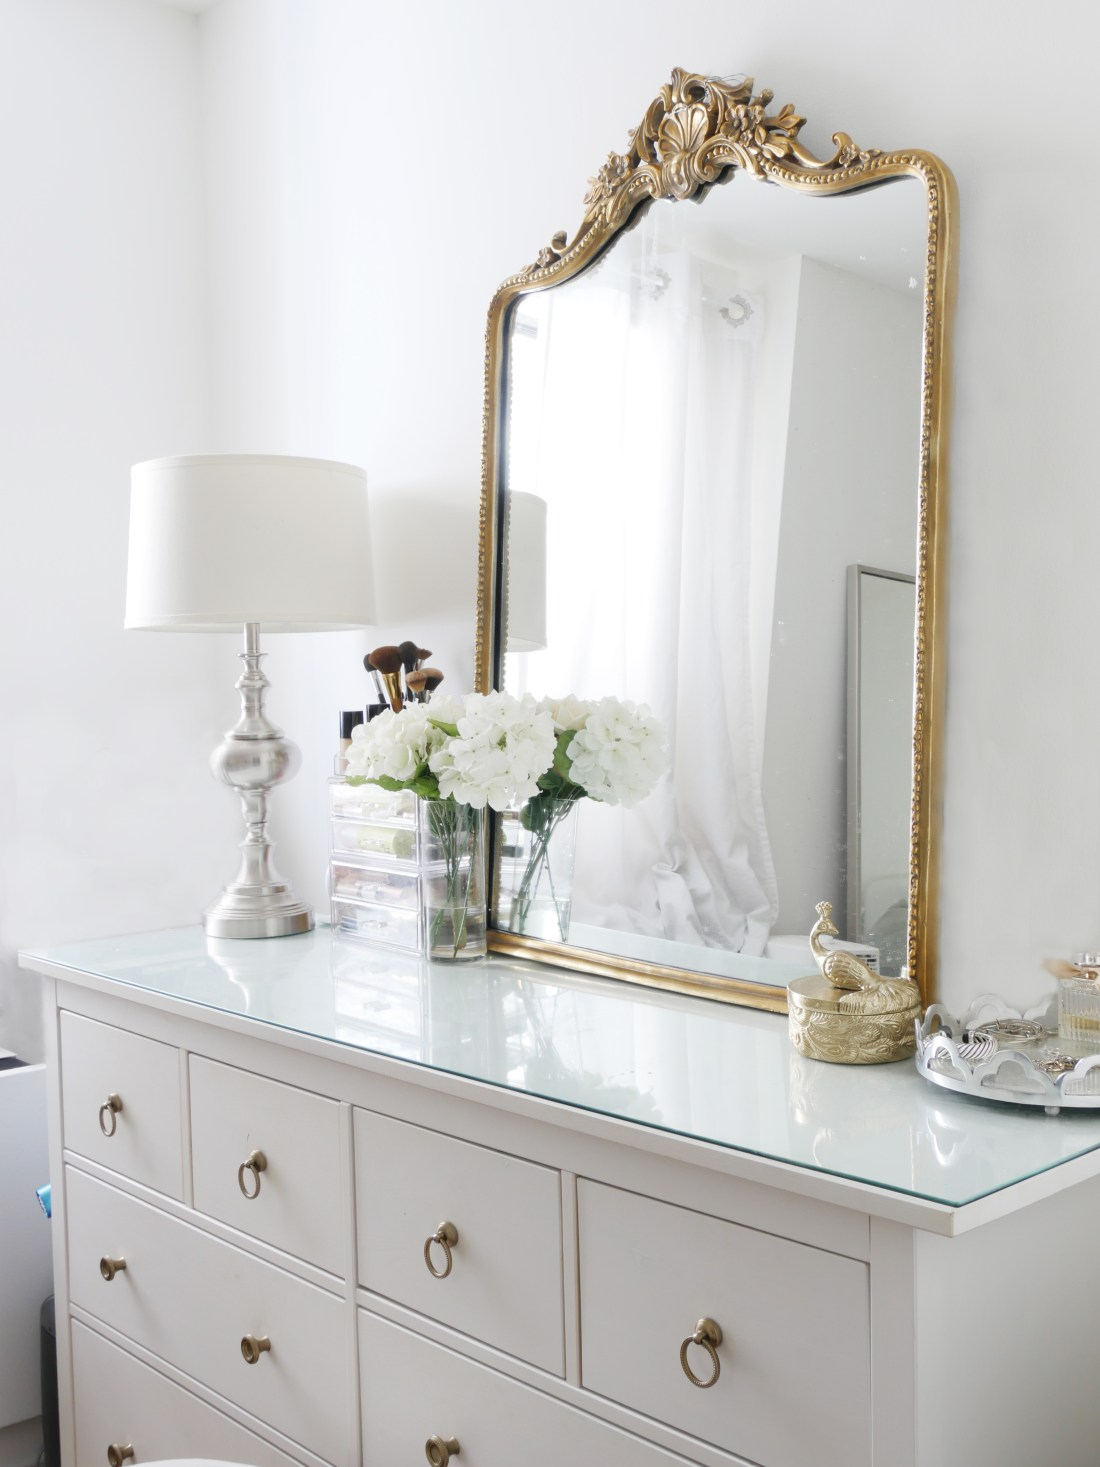 Struggle to find ways to create a glam dresser? Not sure how to decorate it? This one trick will transform your dresser and make it a show-stopper! #dresserdecor #dressermakeover #smallbedroomideas #bedroomideas #bedroomdecor